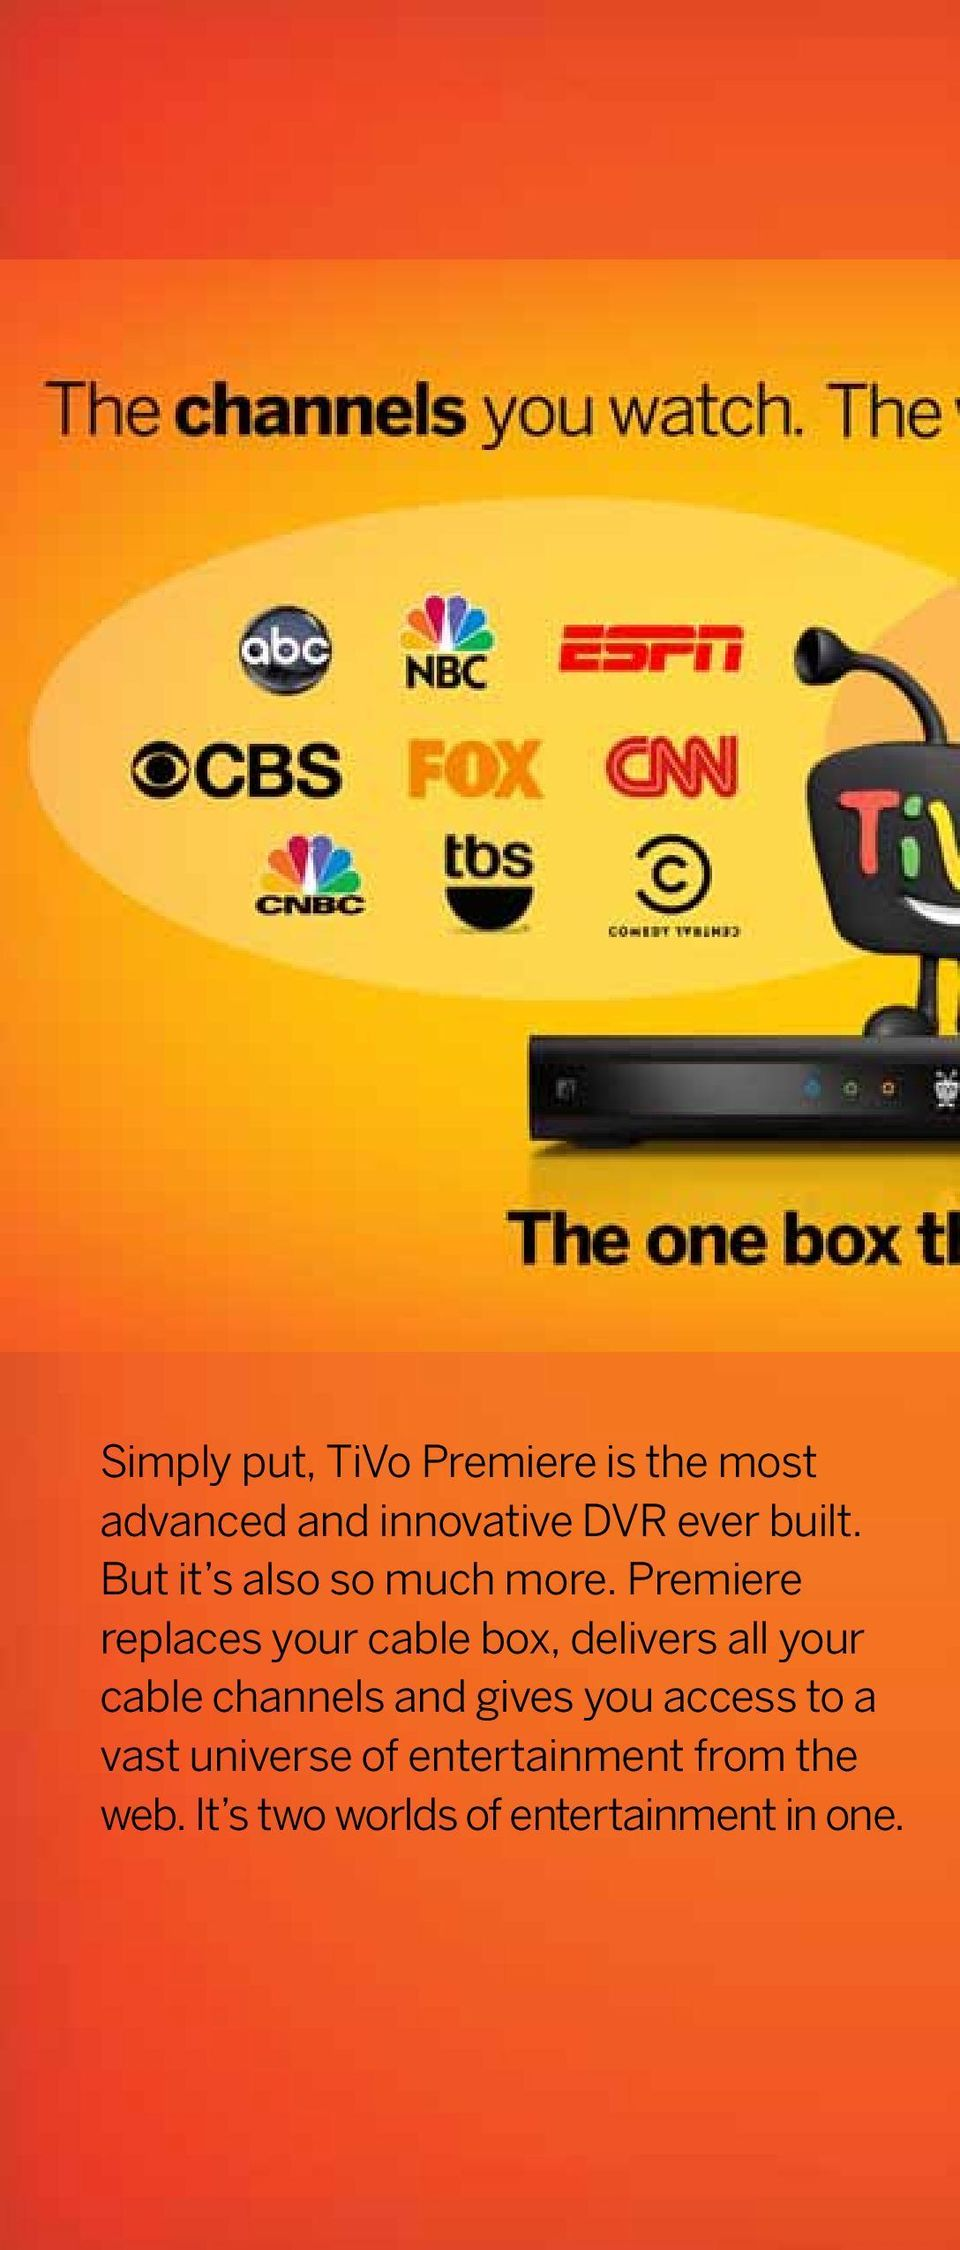 Premiere replaces your cable box, delivers all your cable channels and